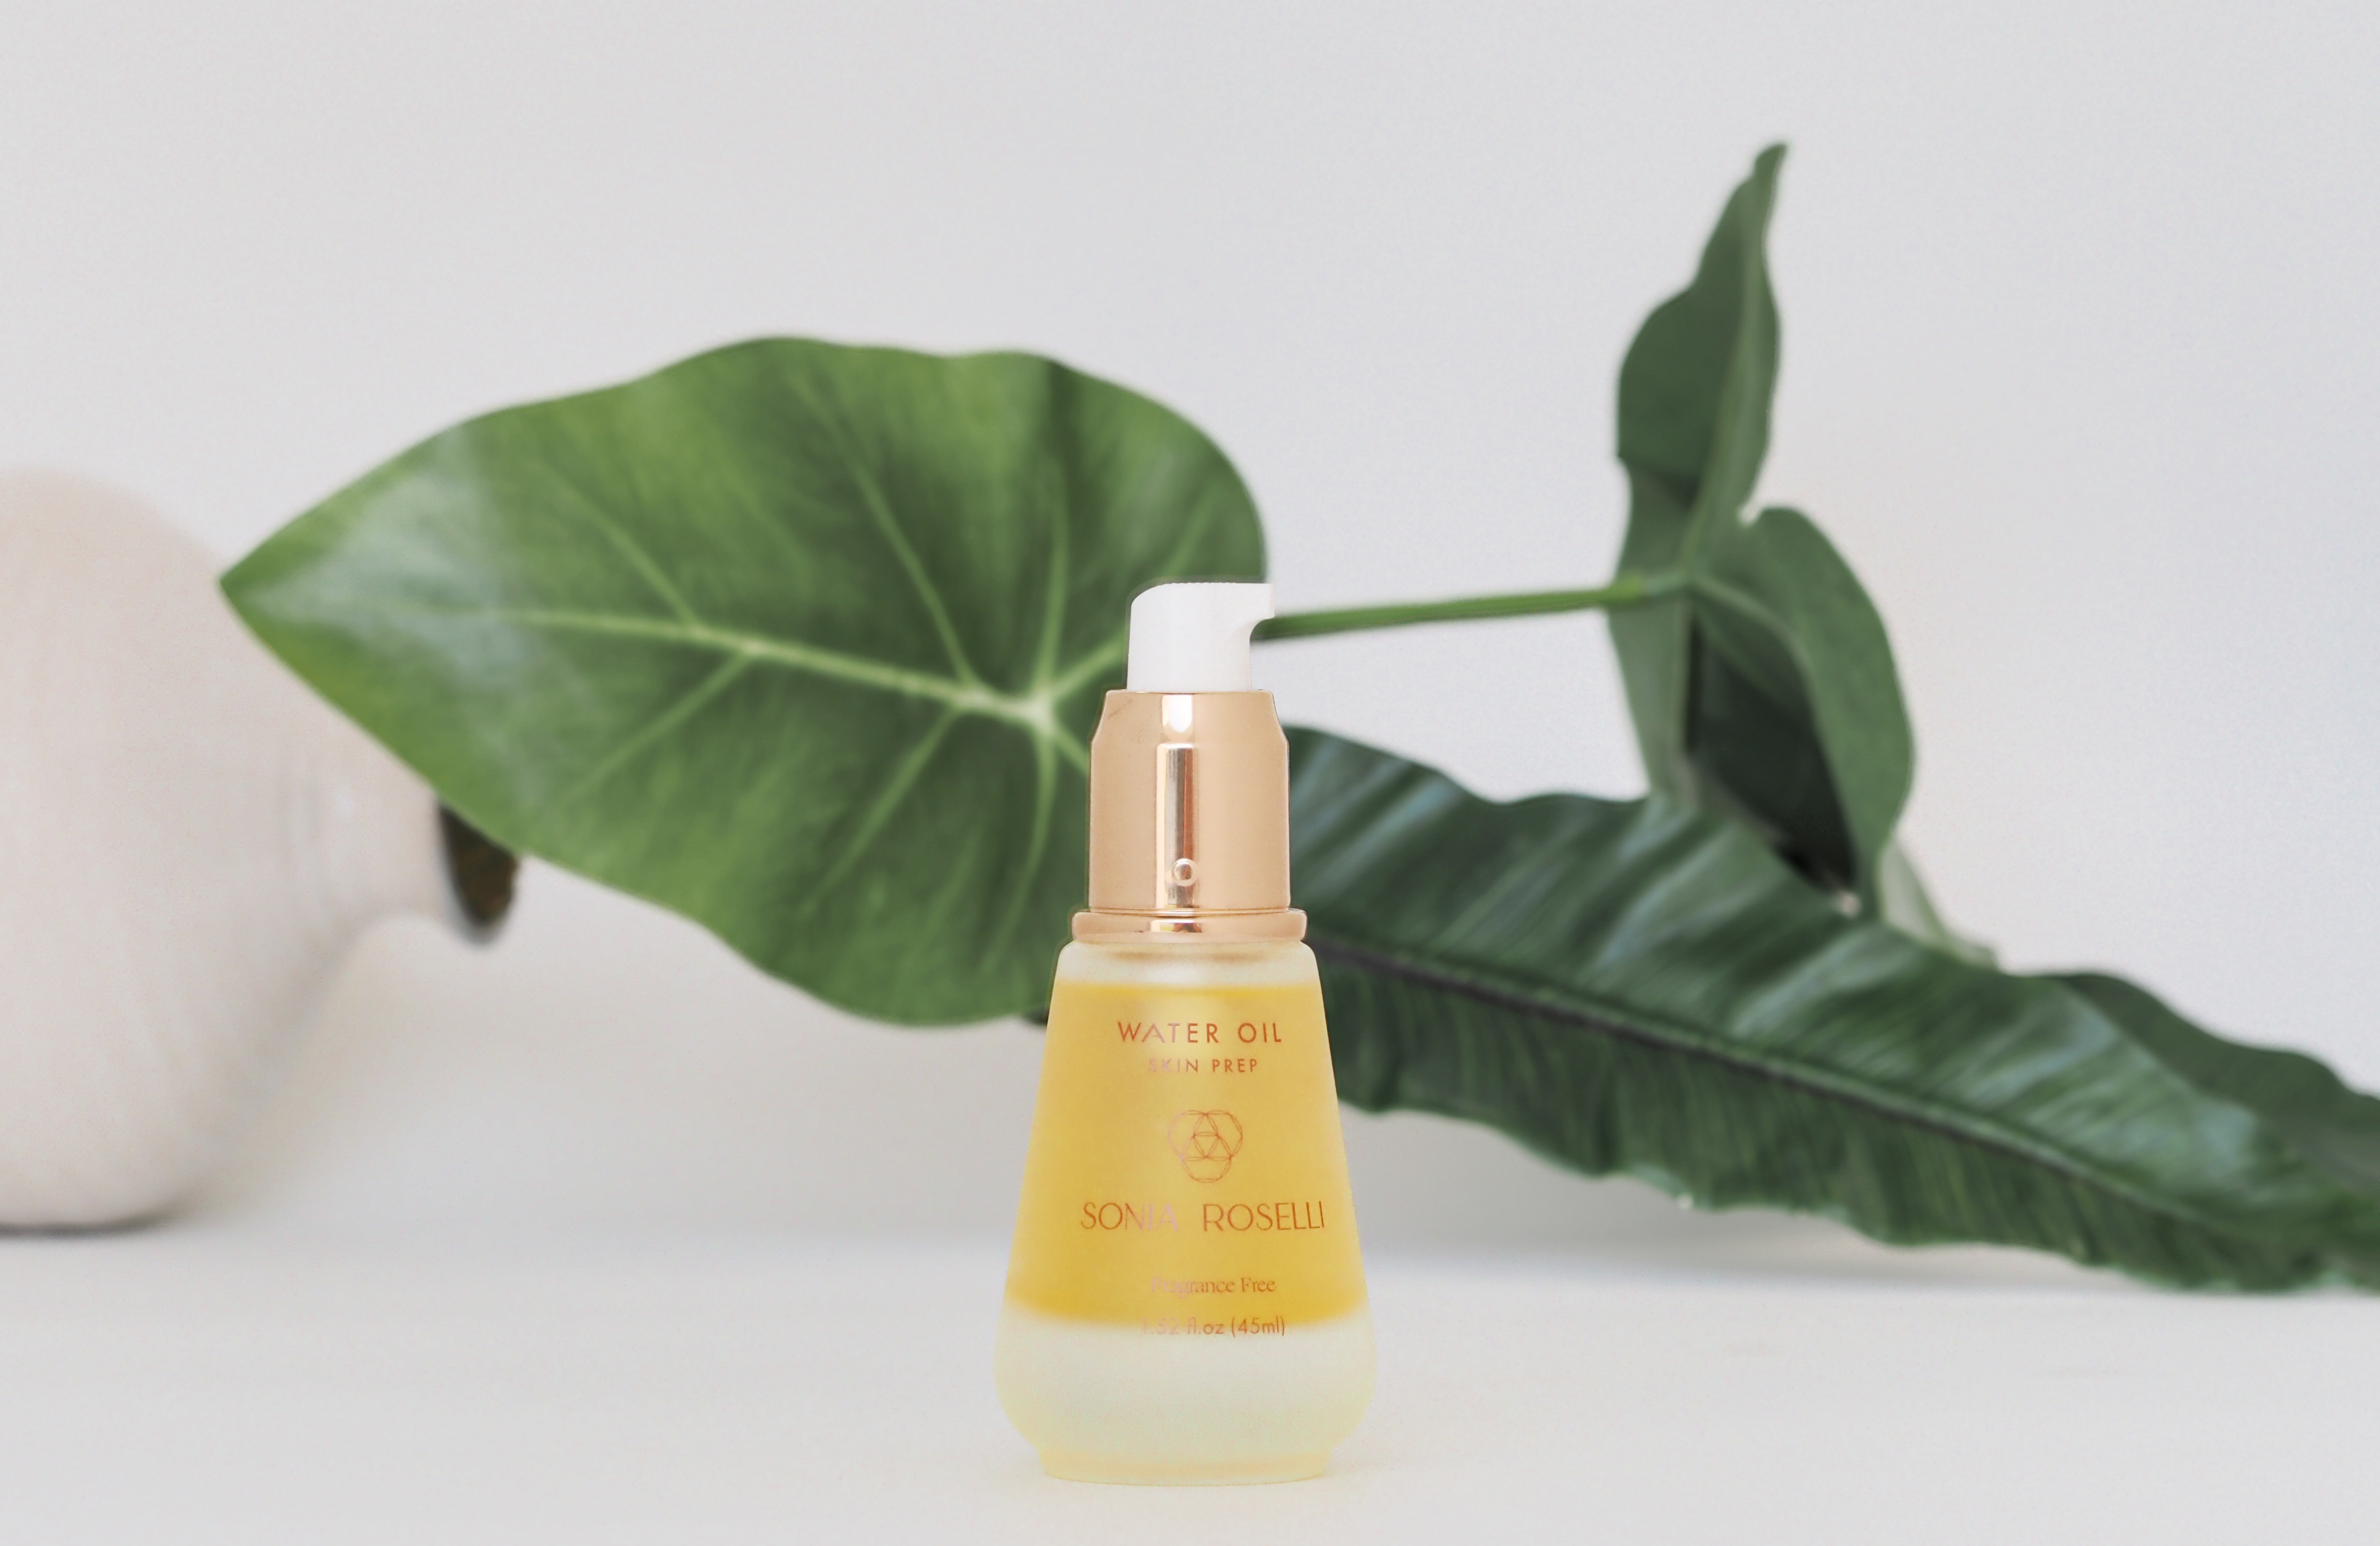 Organic Skincare Products Myths: 5 Things About 'All Natural' Items That You Shouldn't Believe